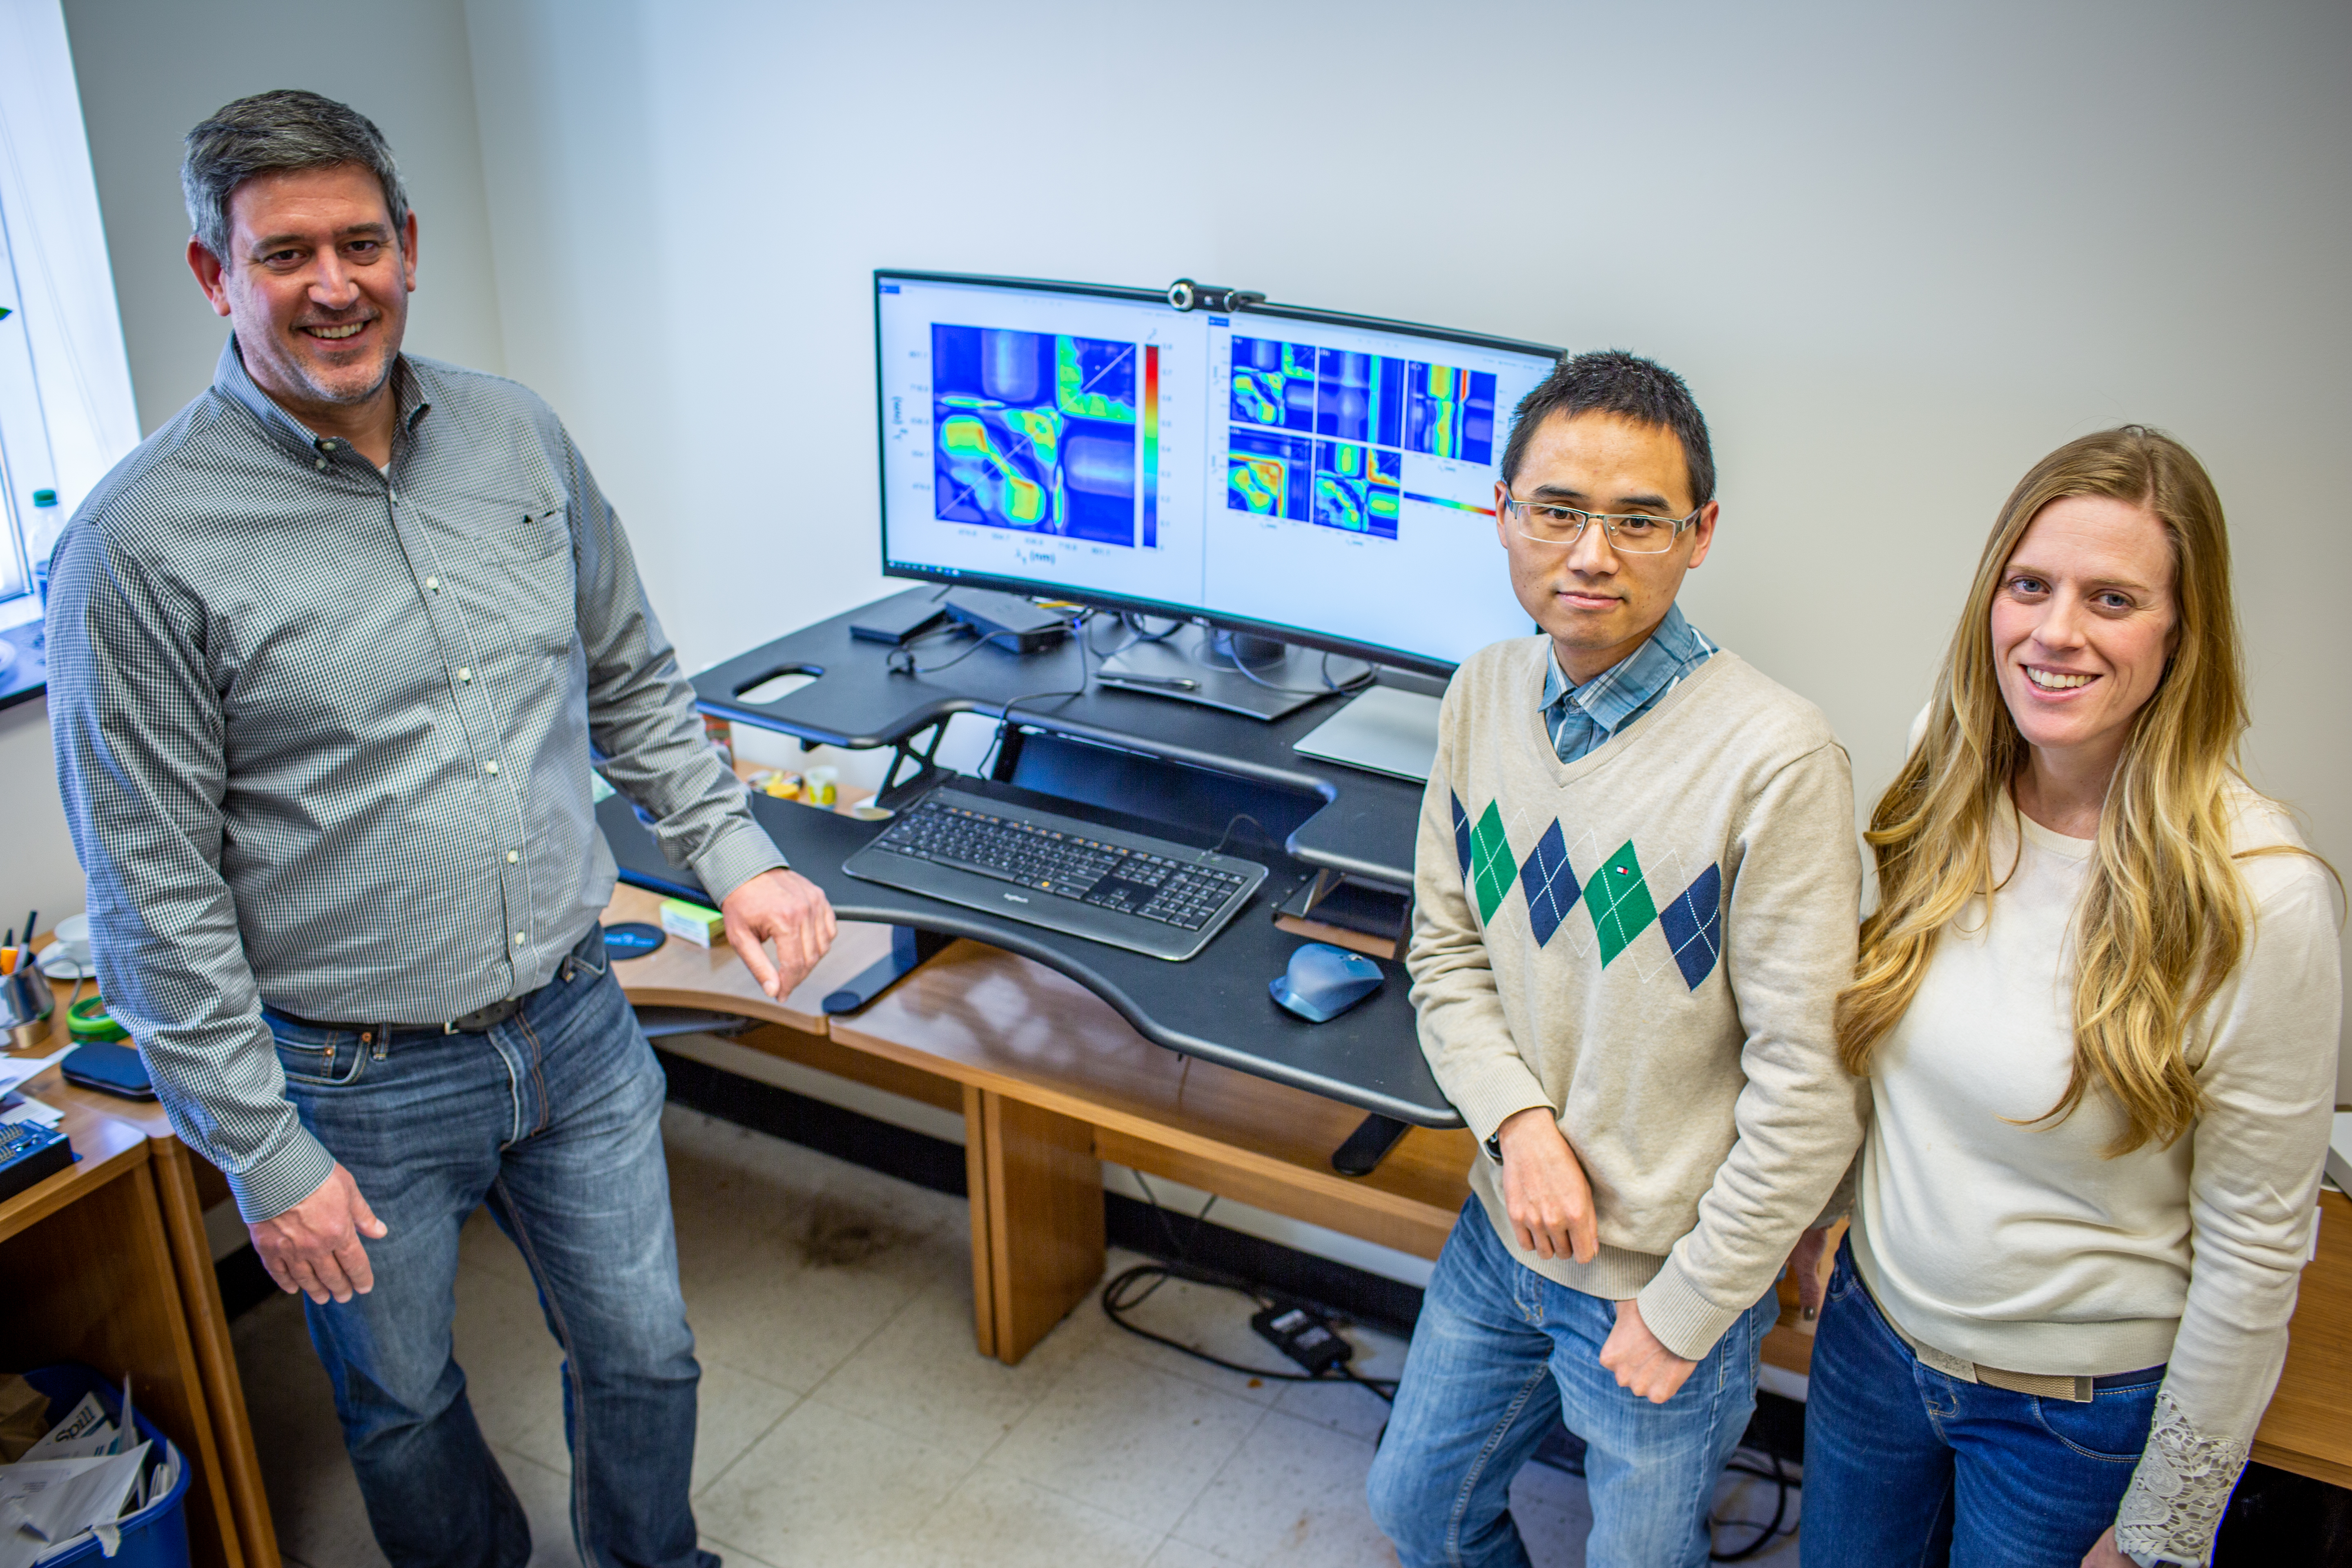 USDA-ARS Research Plant Physiologist Carl Bernacchi (left) with Postdoctoral Researchers Peng Fu (middle) and Katherine Meacham-Hensold (right)